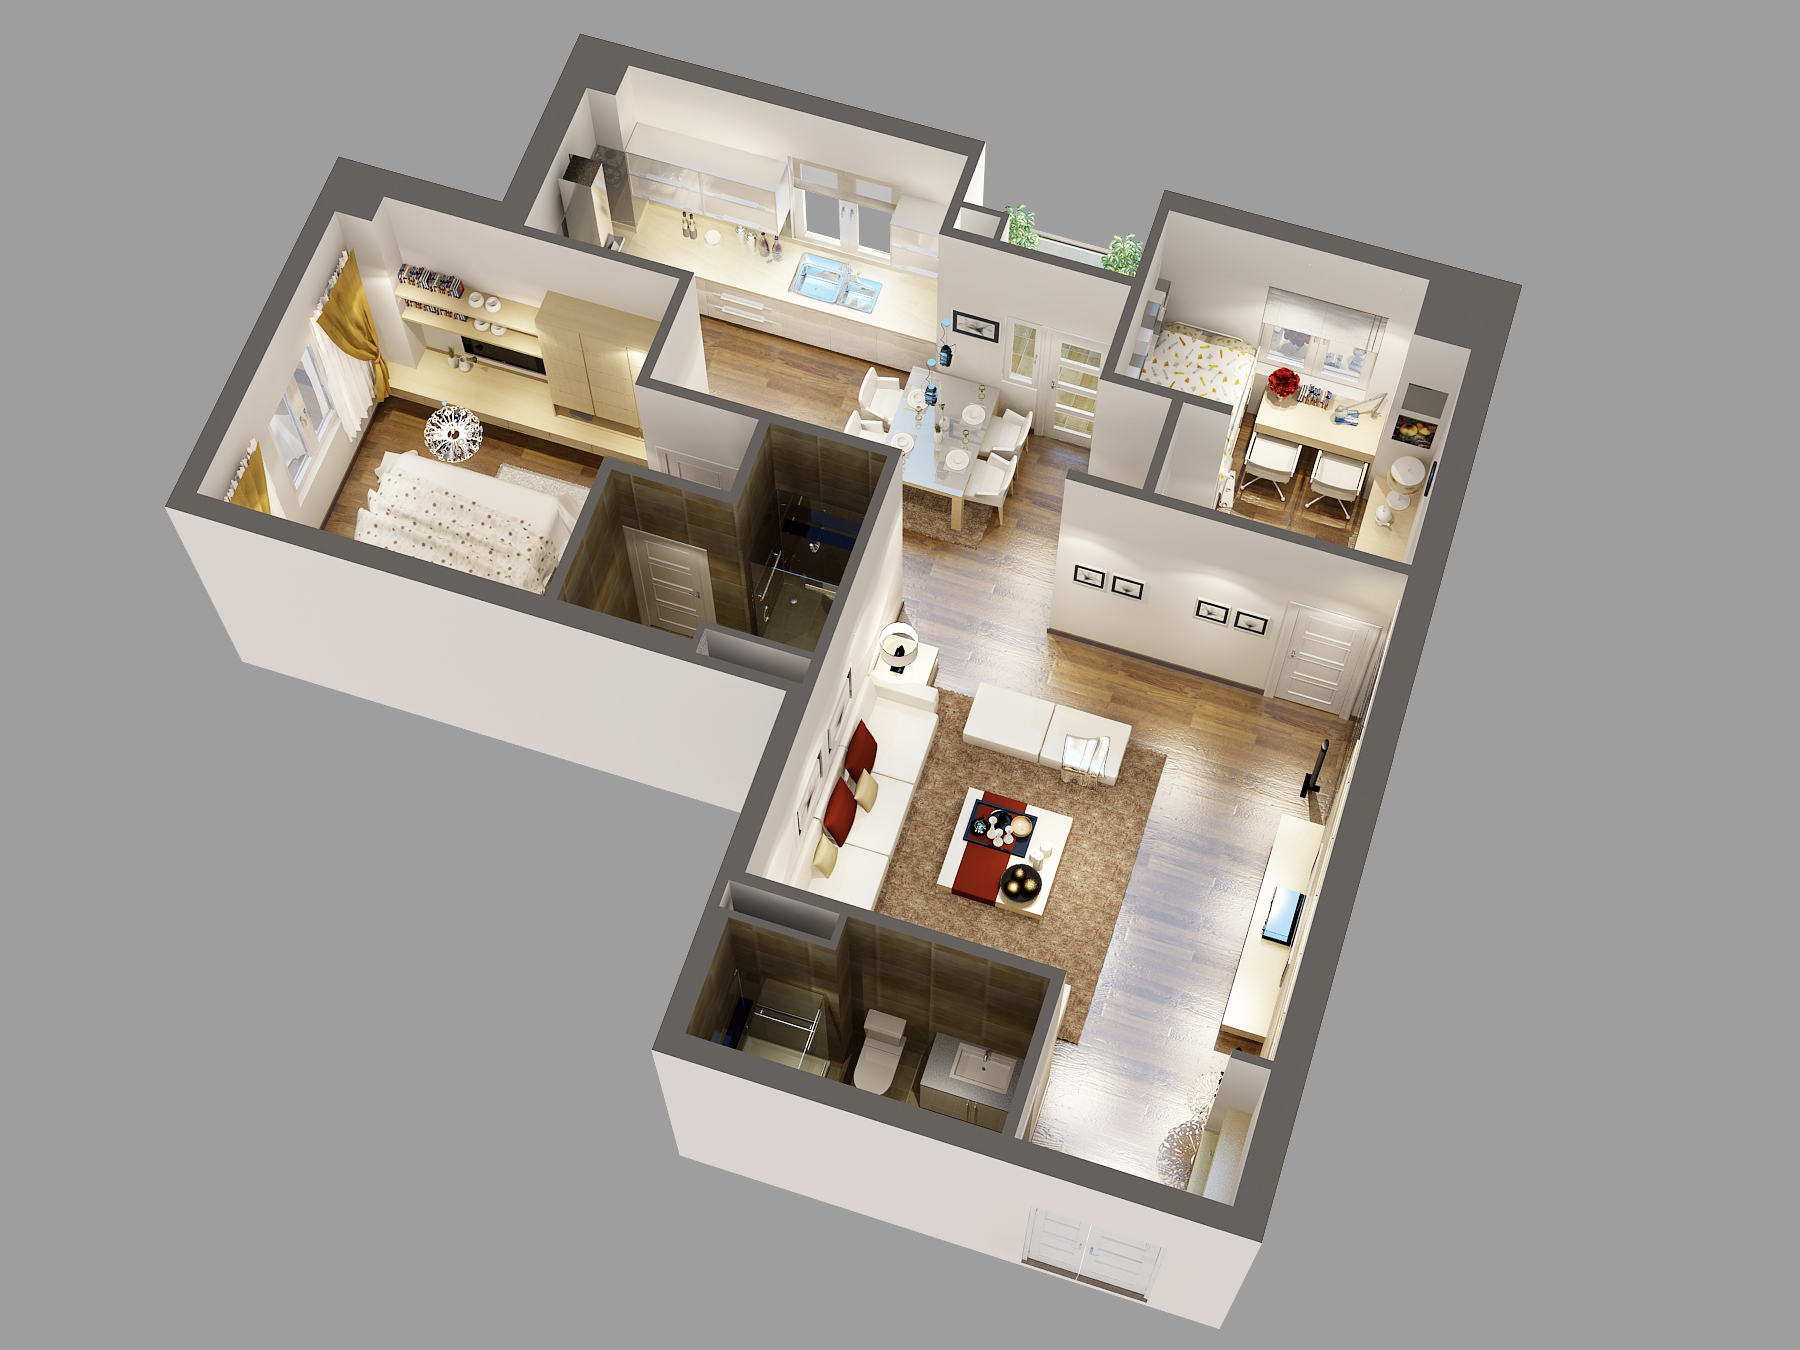 Detailed house cutaway 3d model 3d model max for Apartment design models